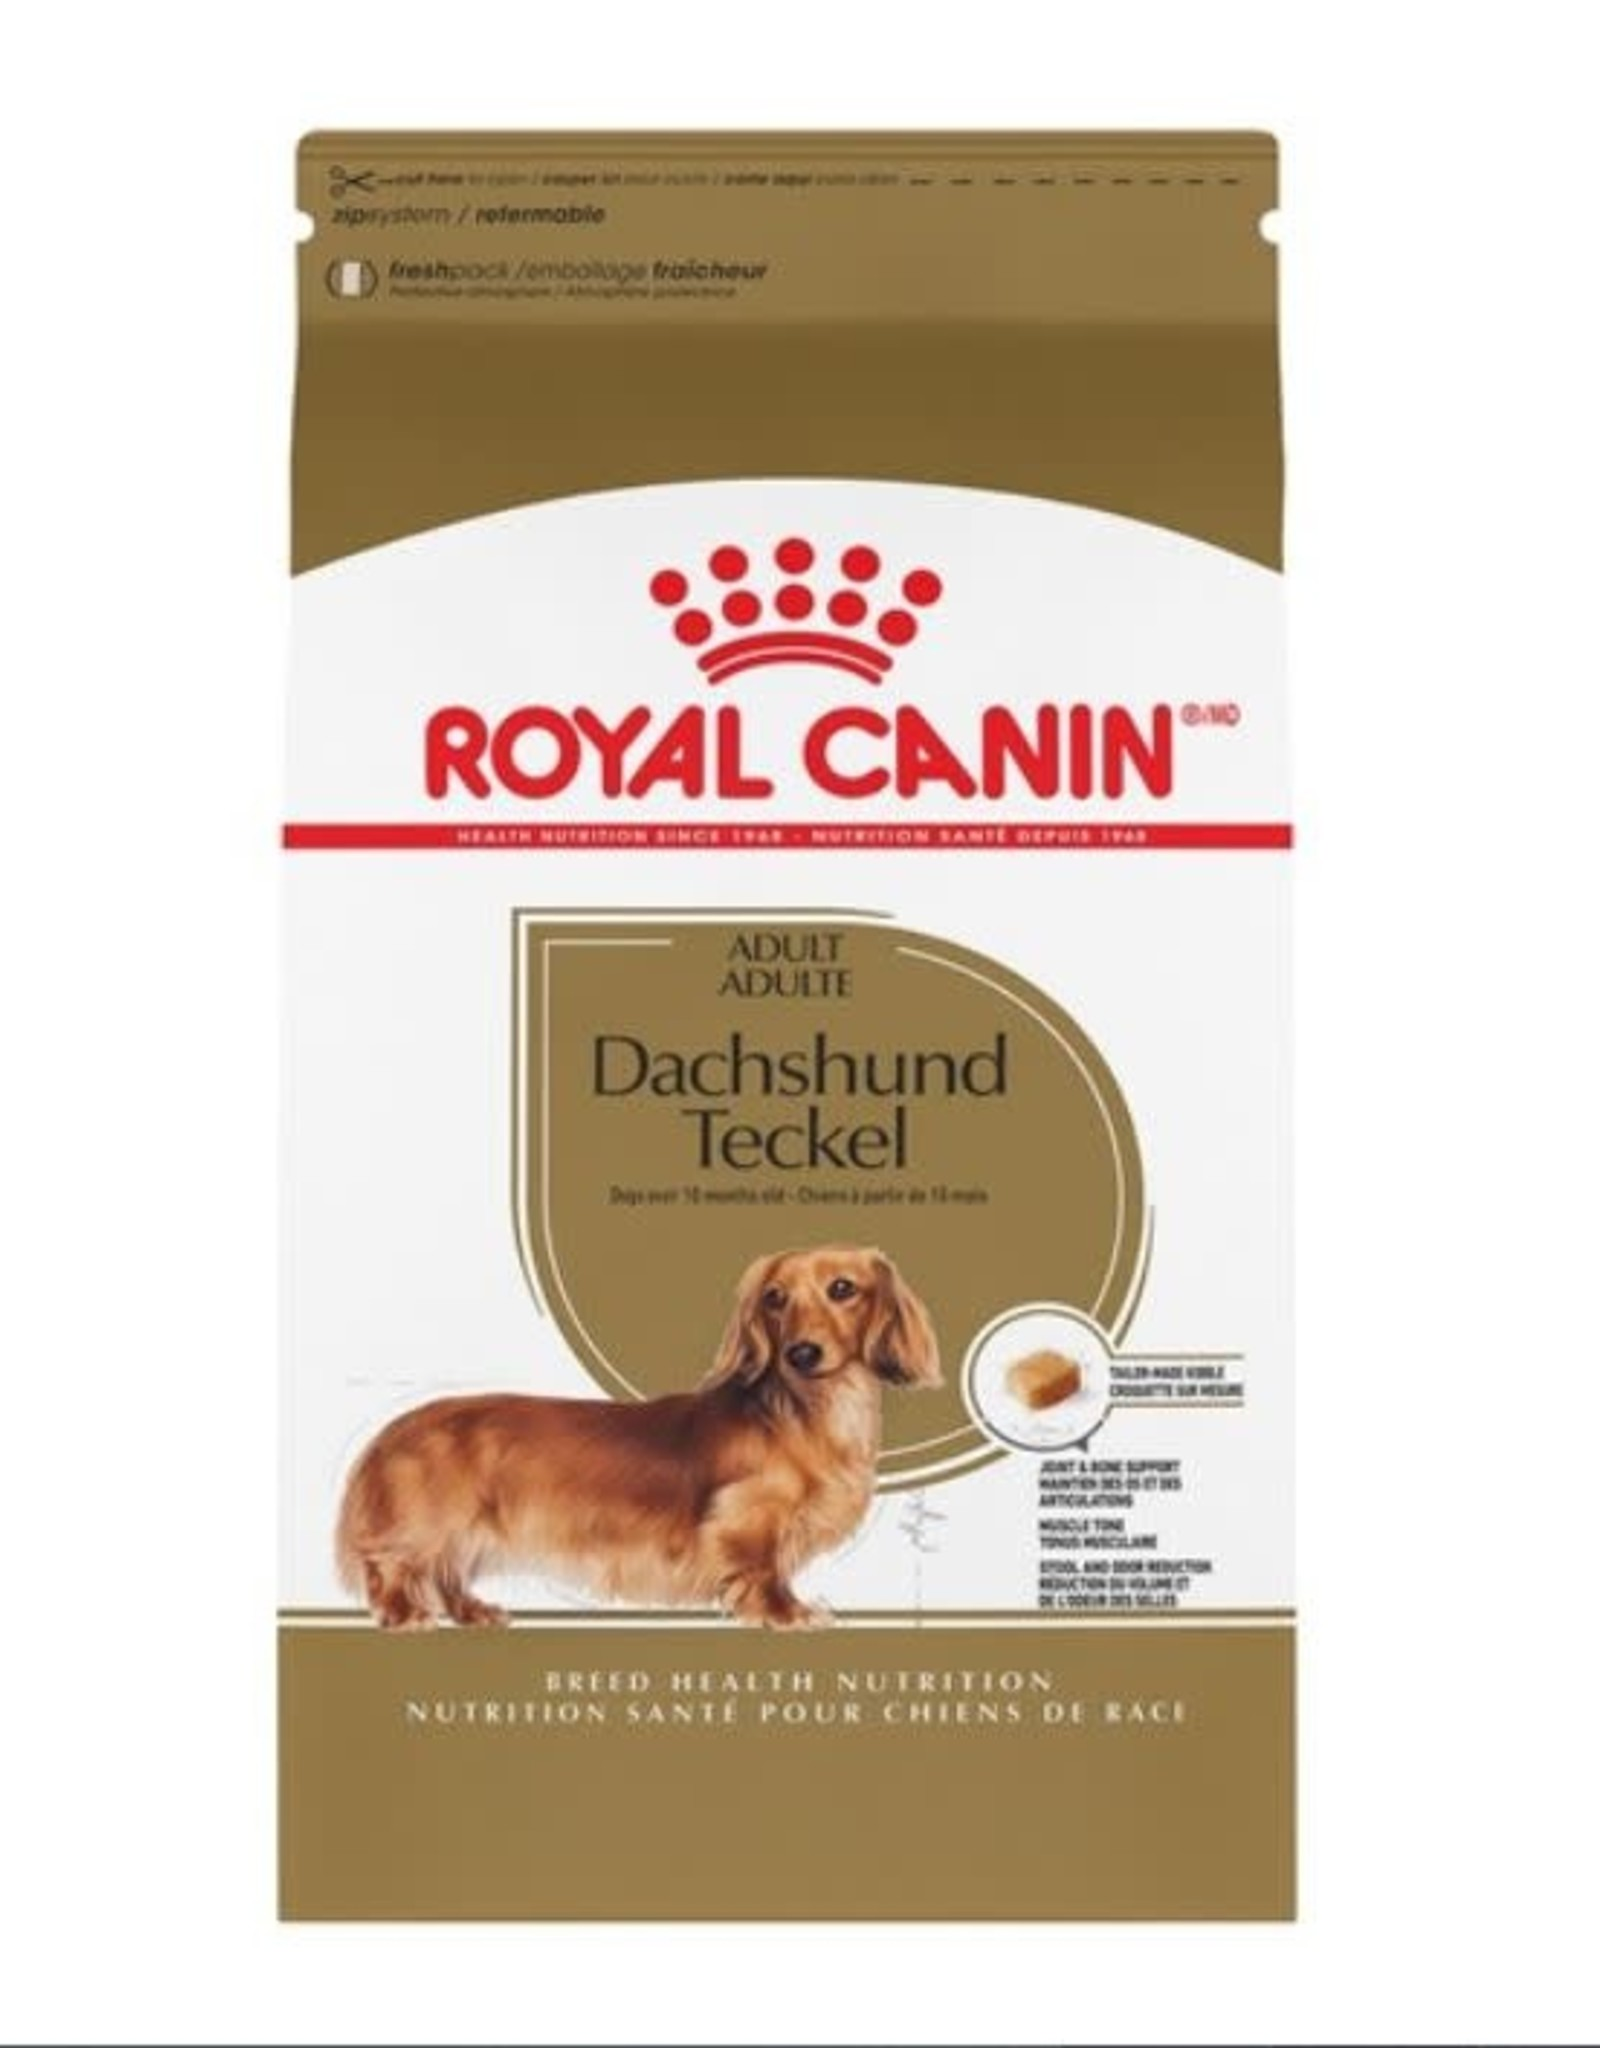 royal canin Royal Canin Dachshund Adult Dry Dog Food 2.5kg